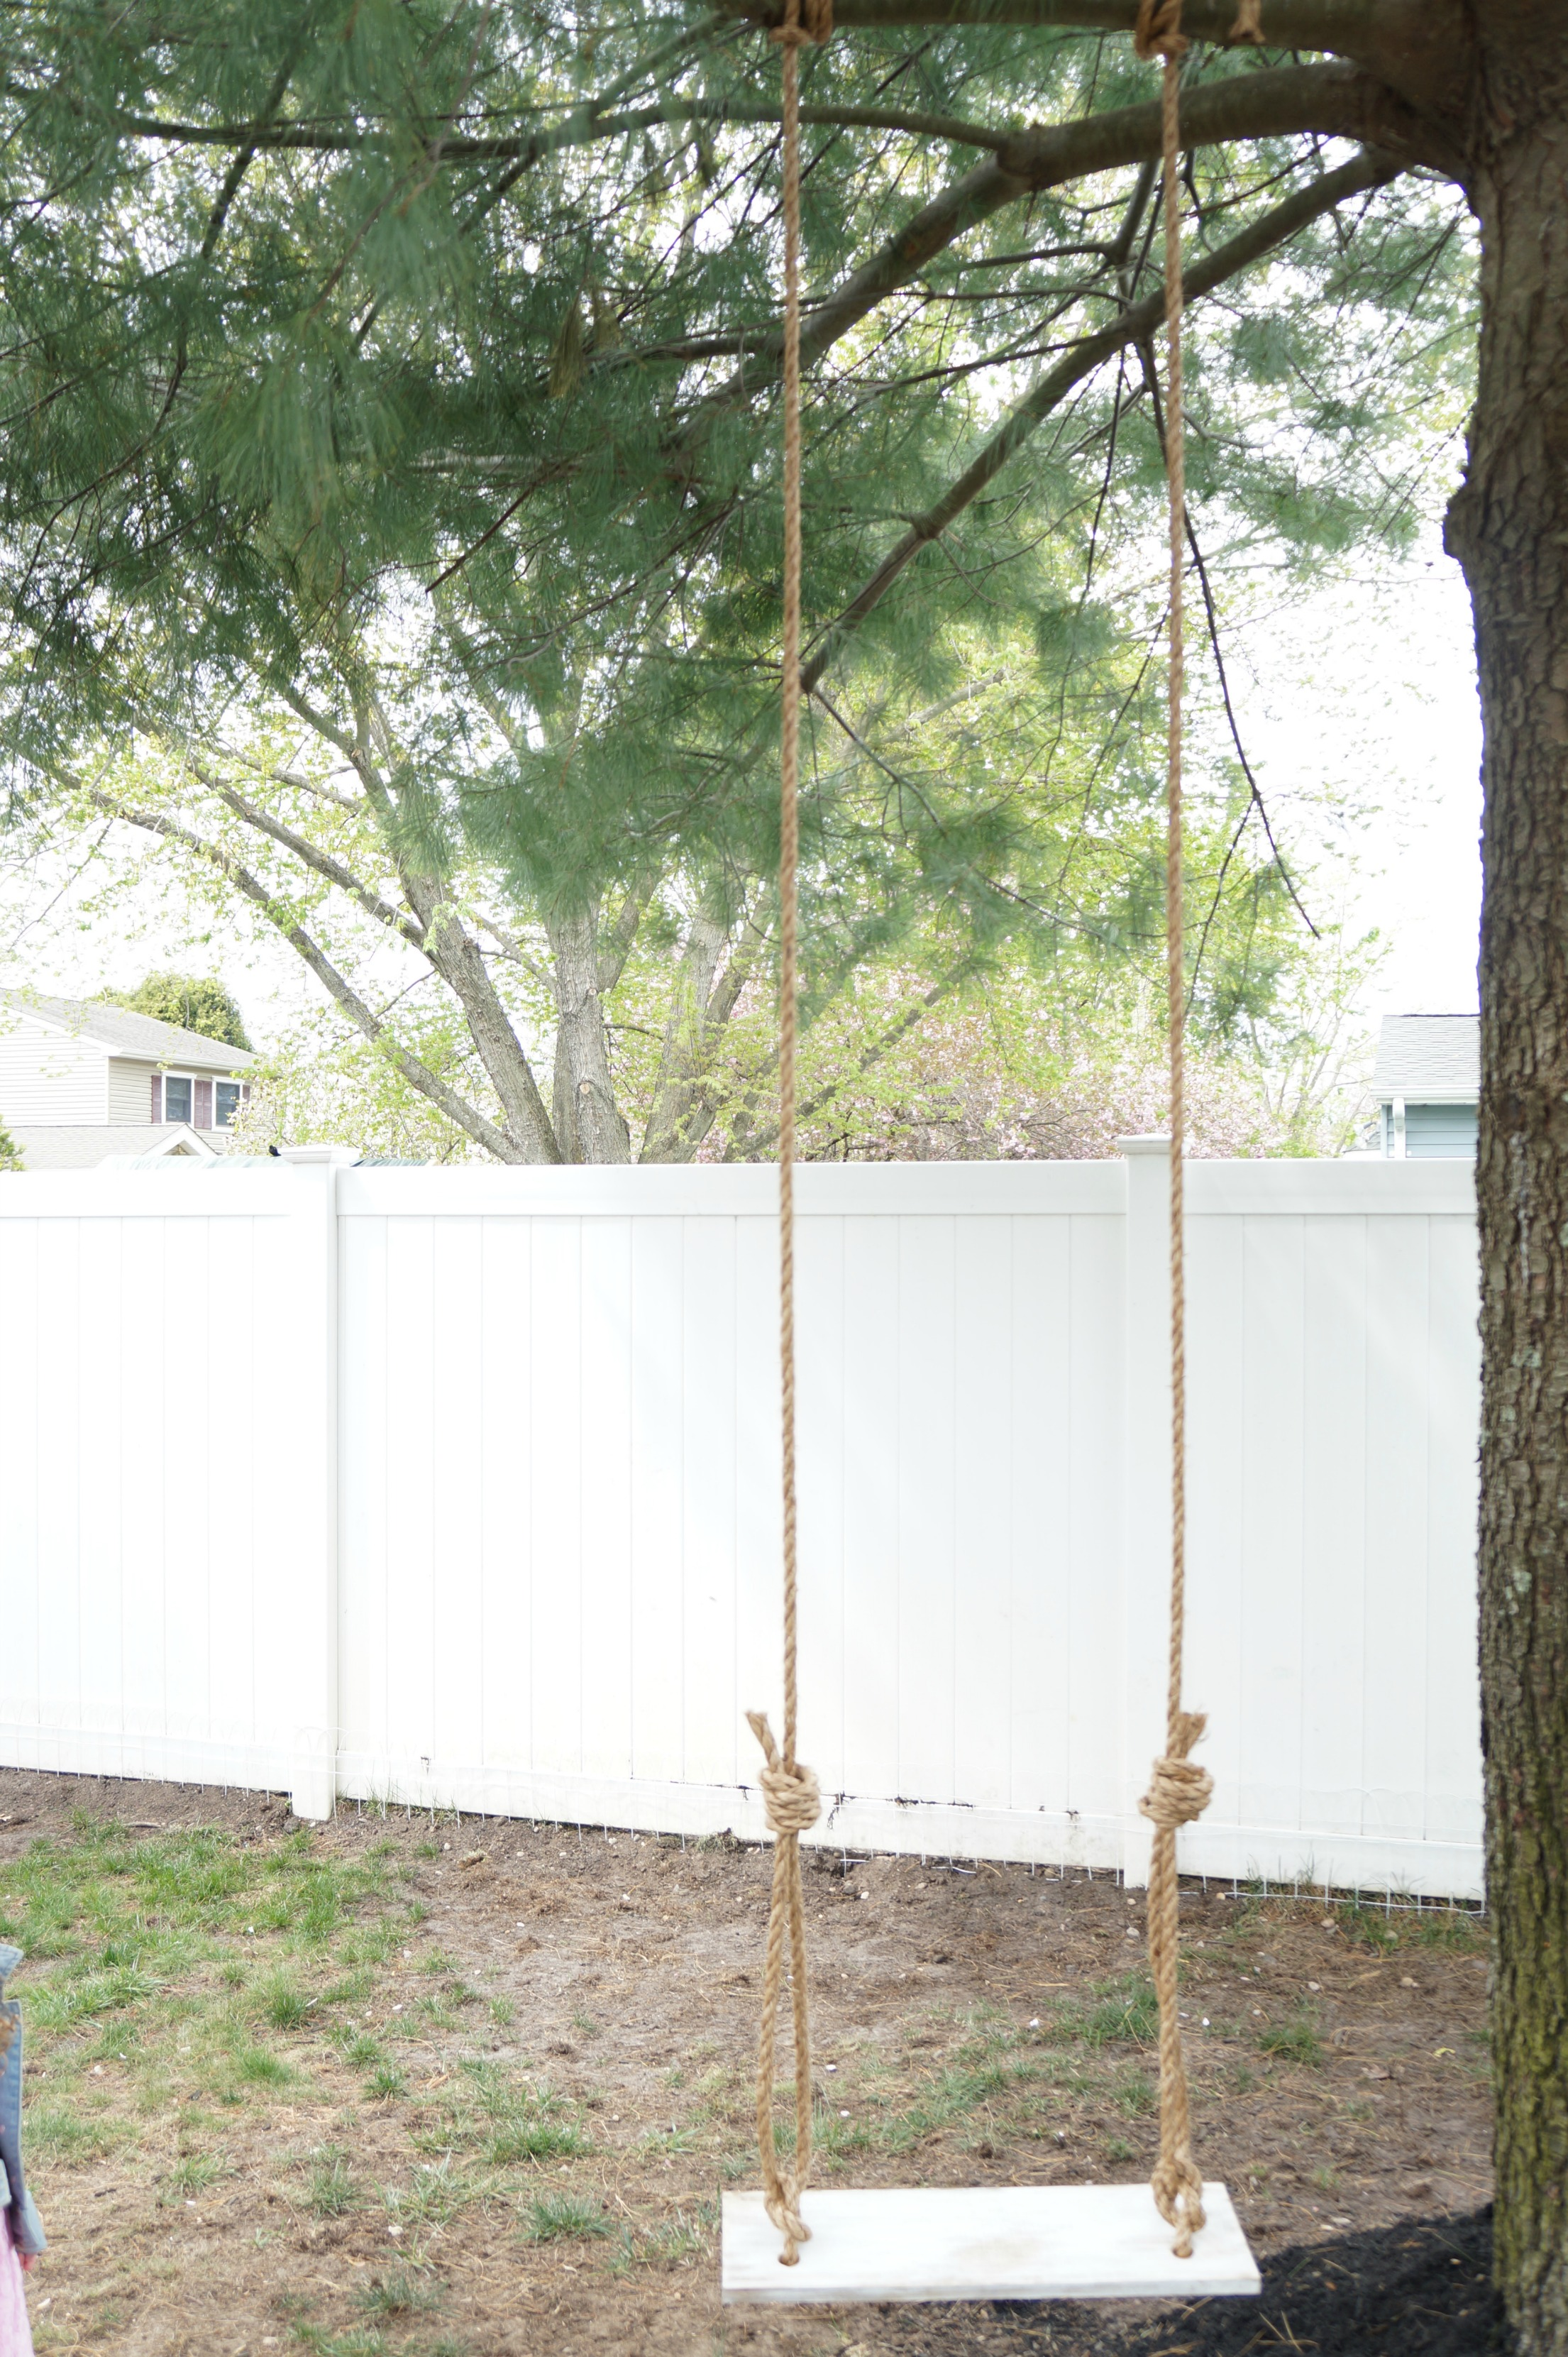 How to build a tree swing - An Old Fashion Tree Swing